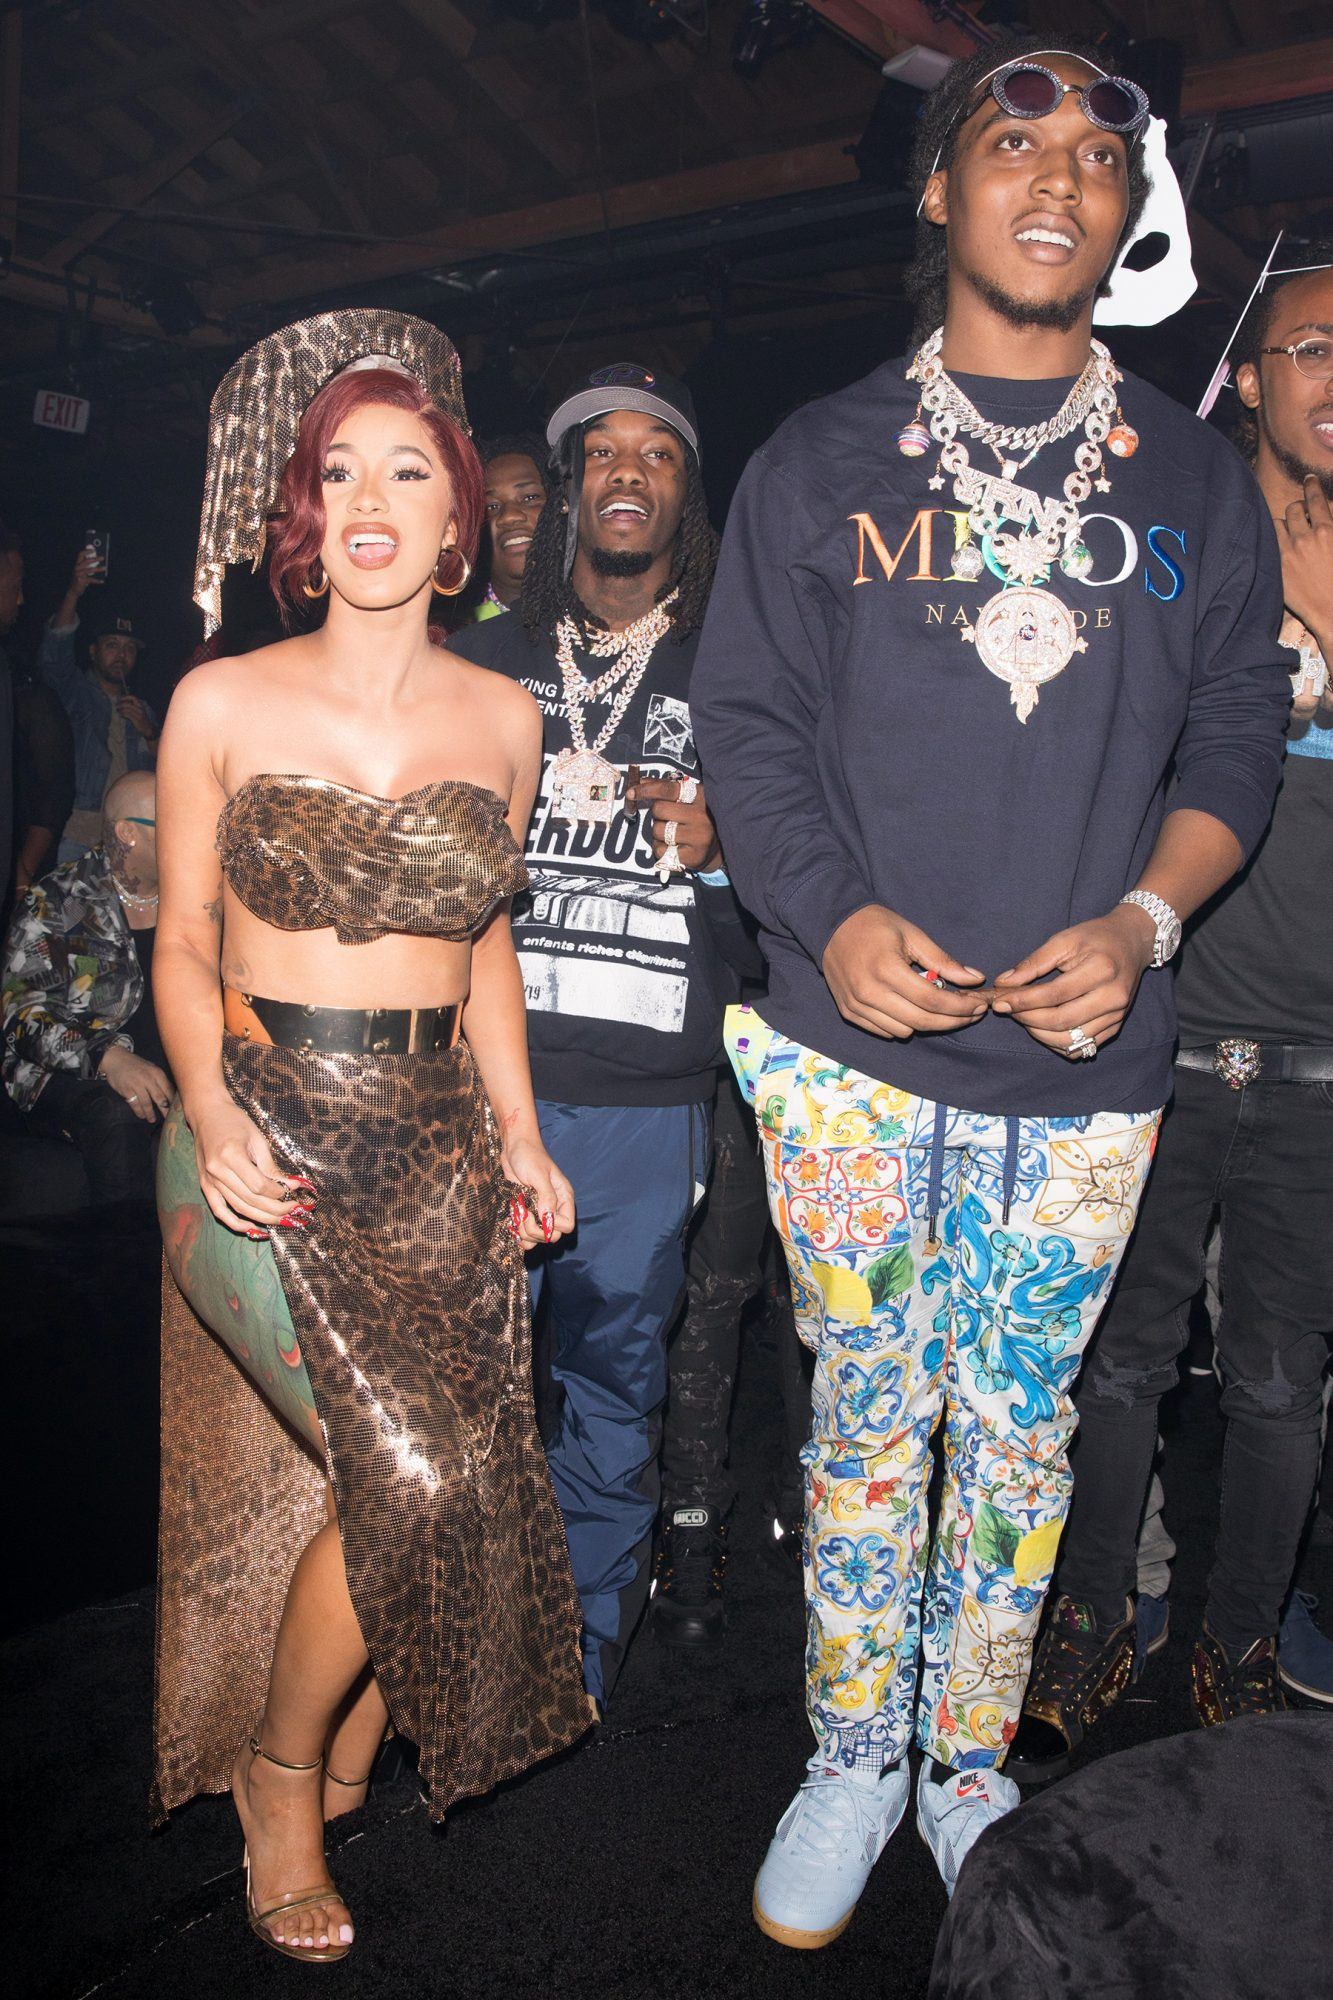 Cardi B and Offset are both spotted together celebration the album release for Quavo Huncho in Los Angeles